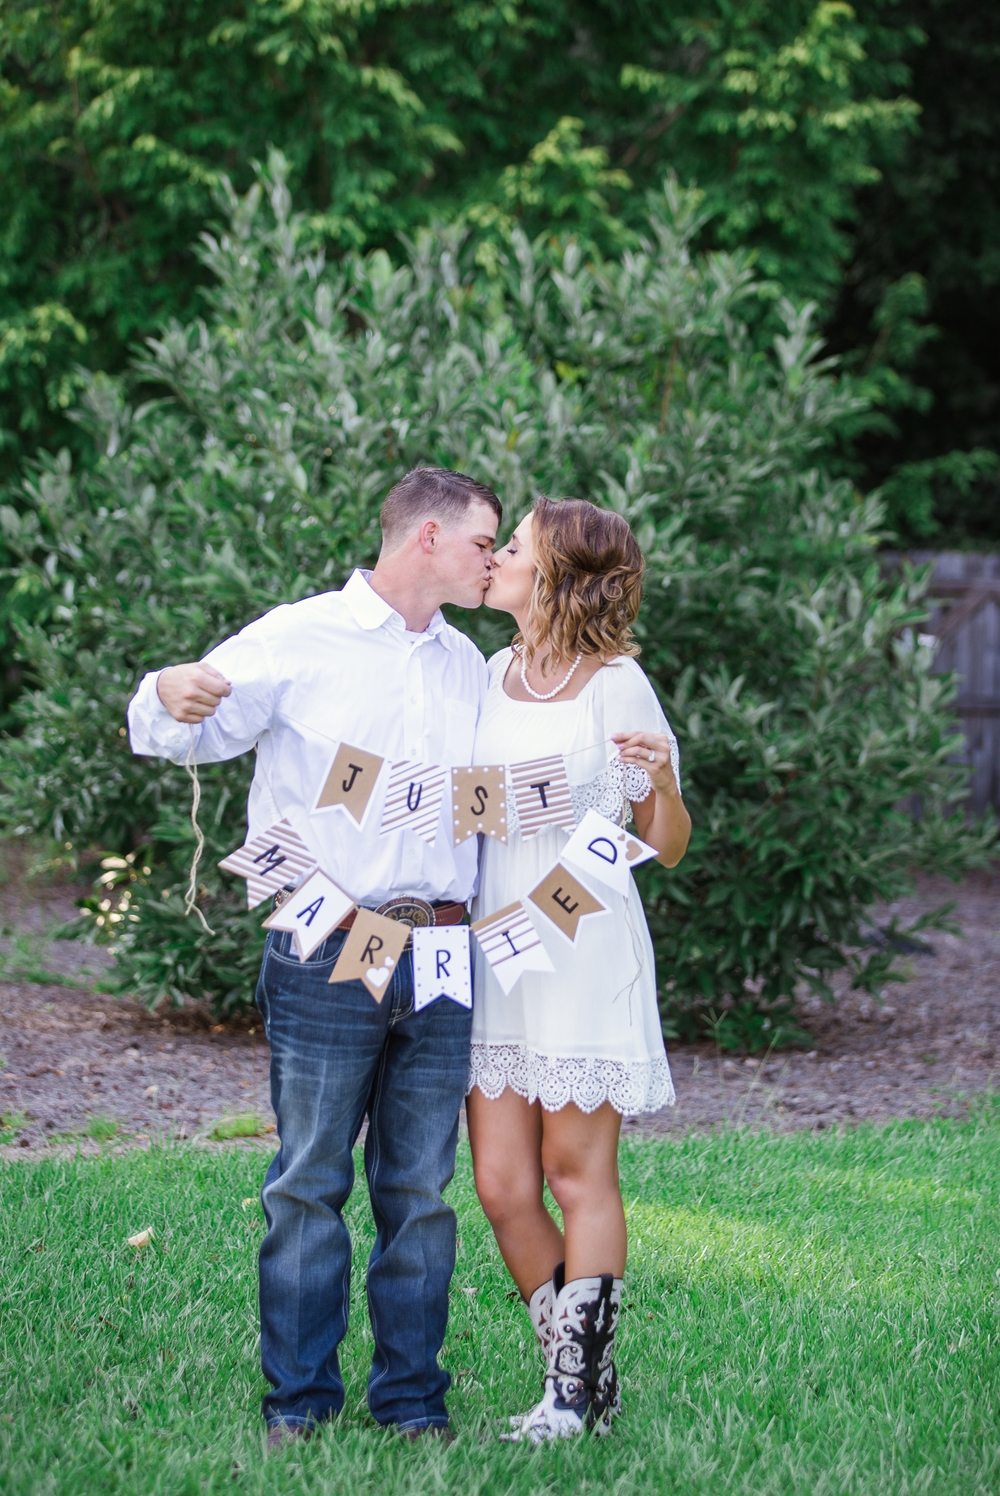 Southern Country Backyard Elopement - Fayetteville North Carolina Wedding Photographer - Johanna Dye Photography